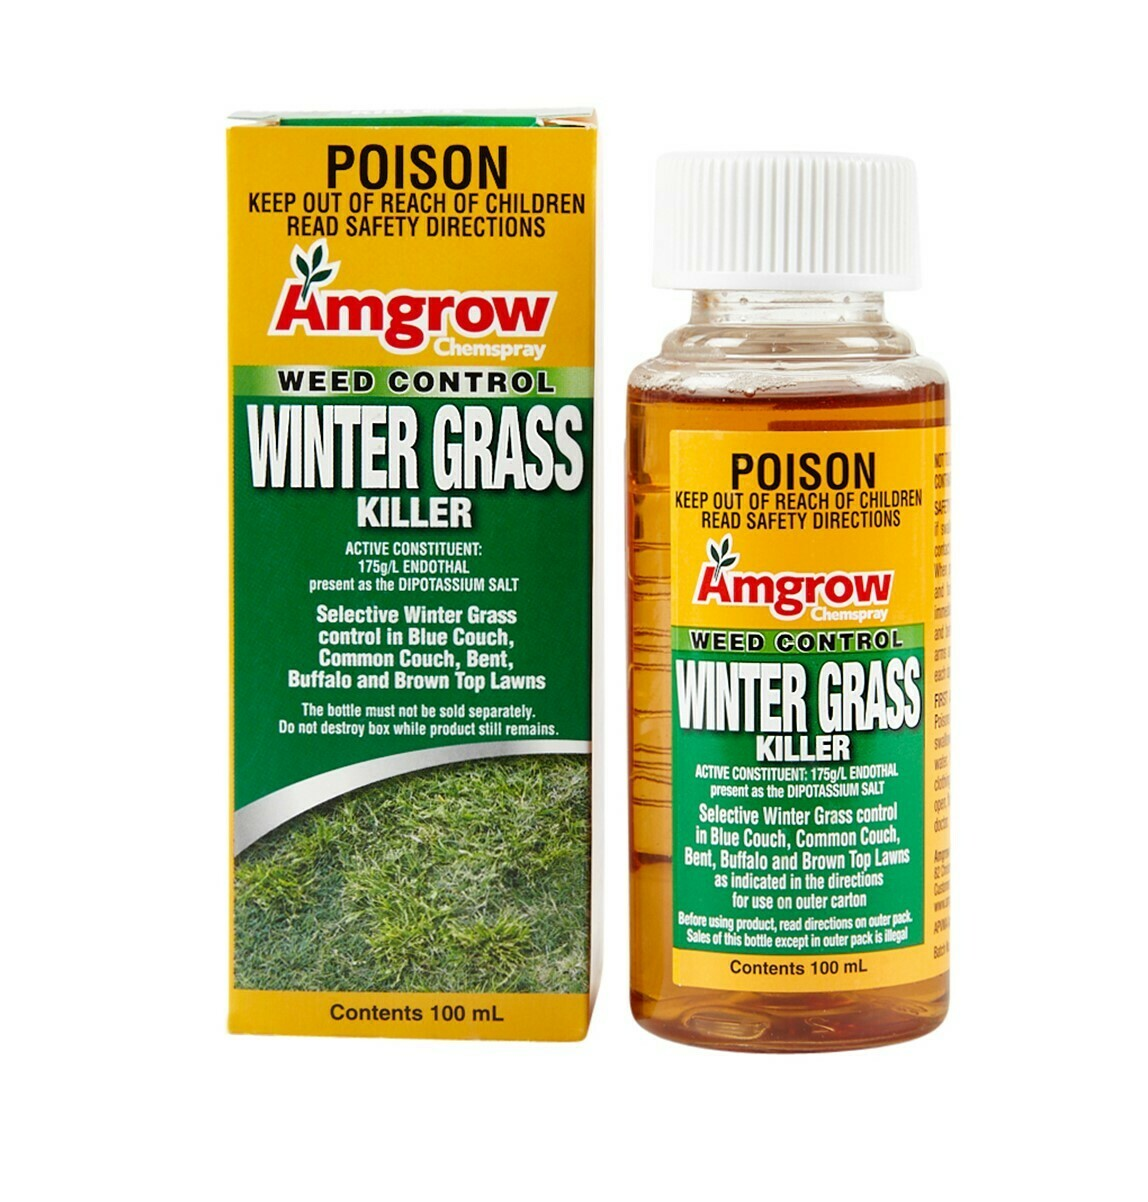 Amgrow Winter Grass Killer